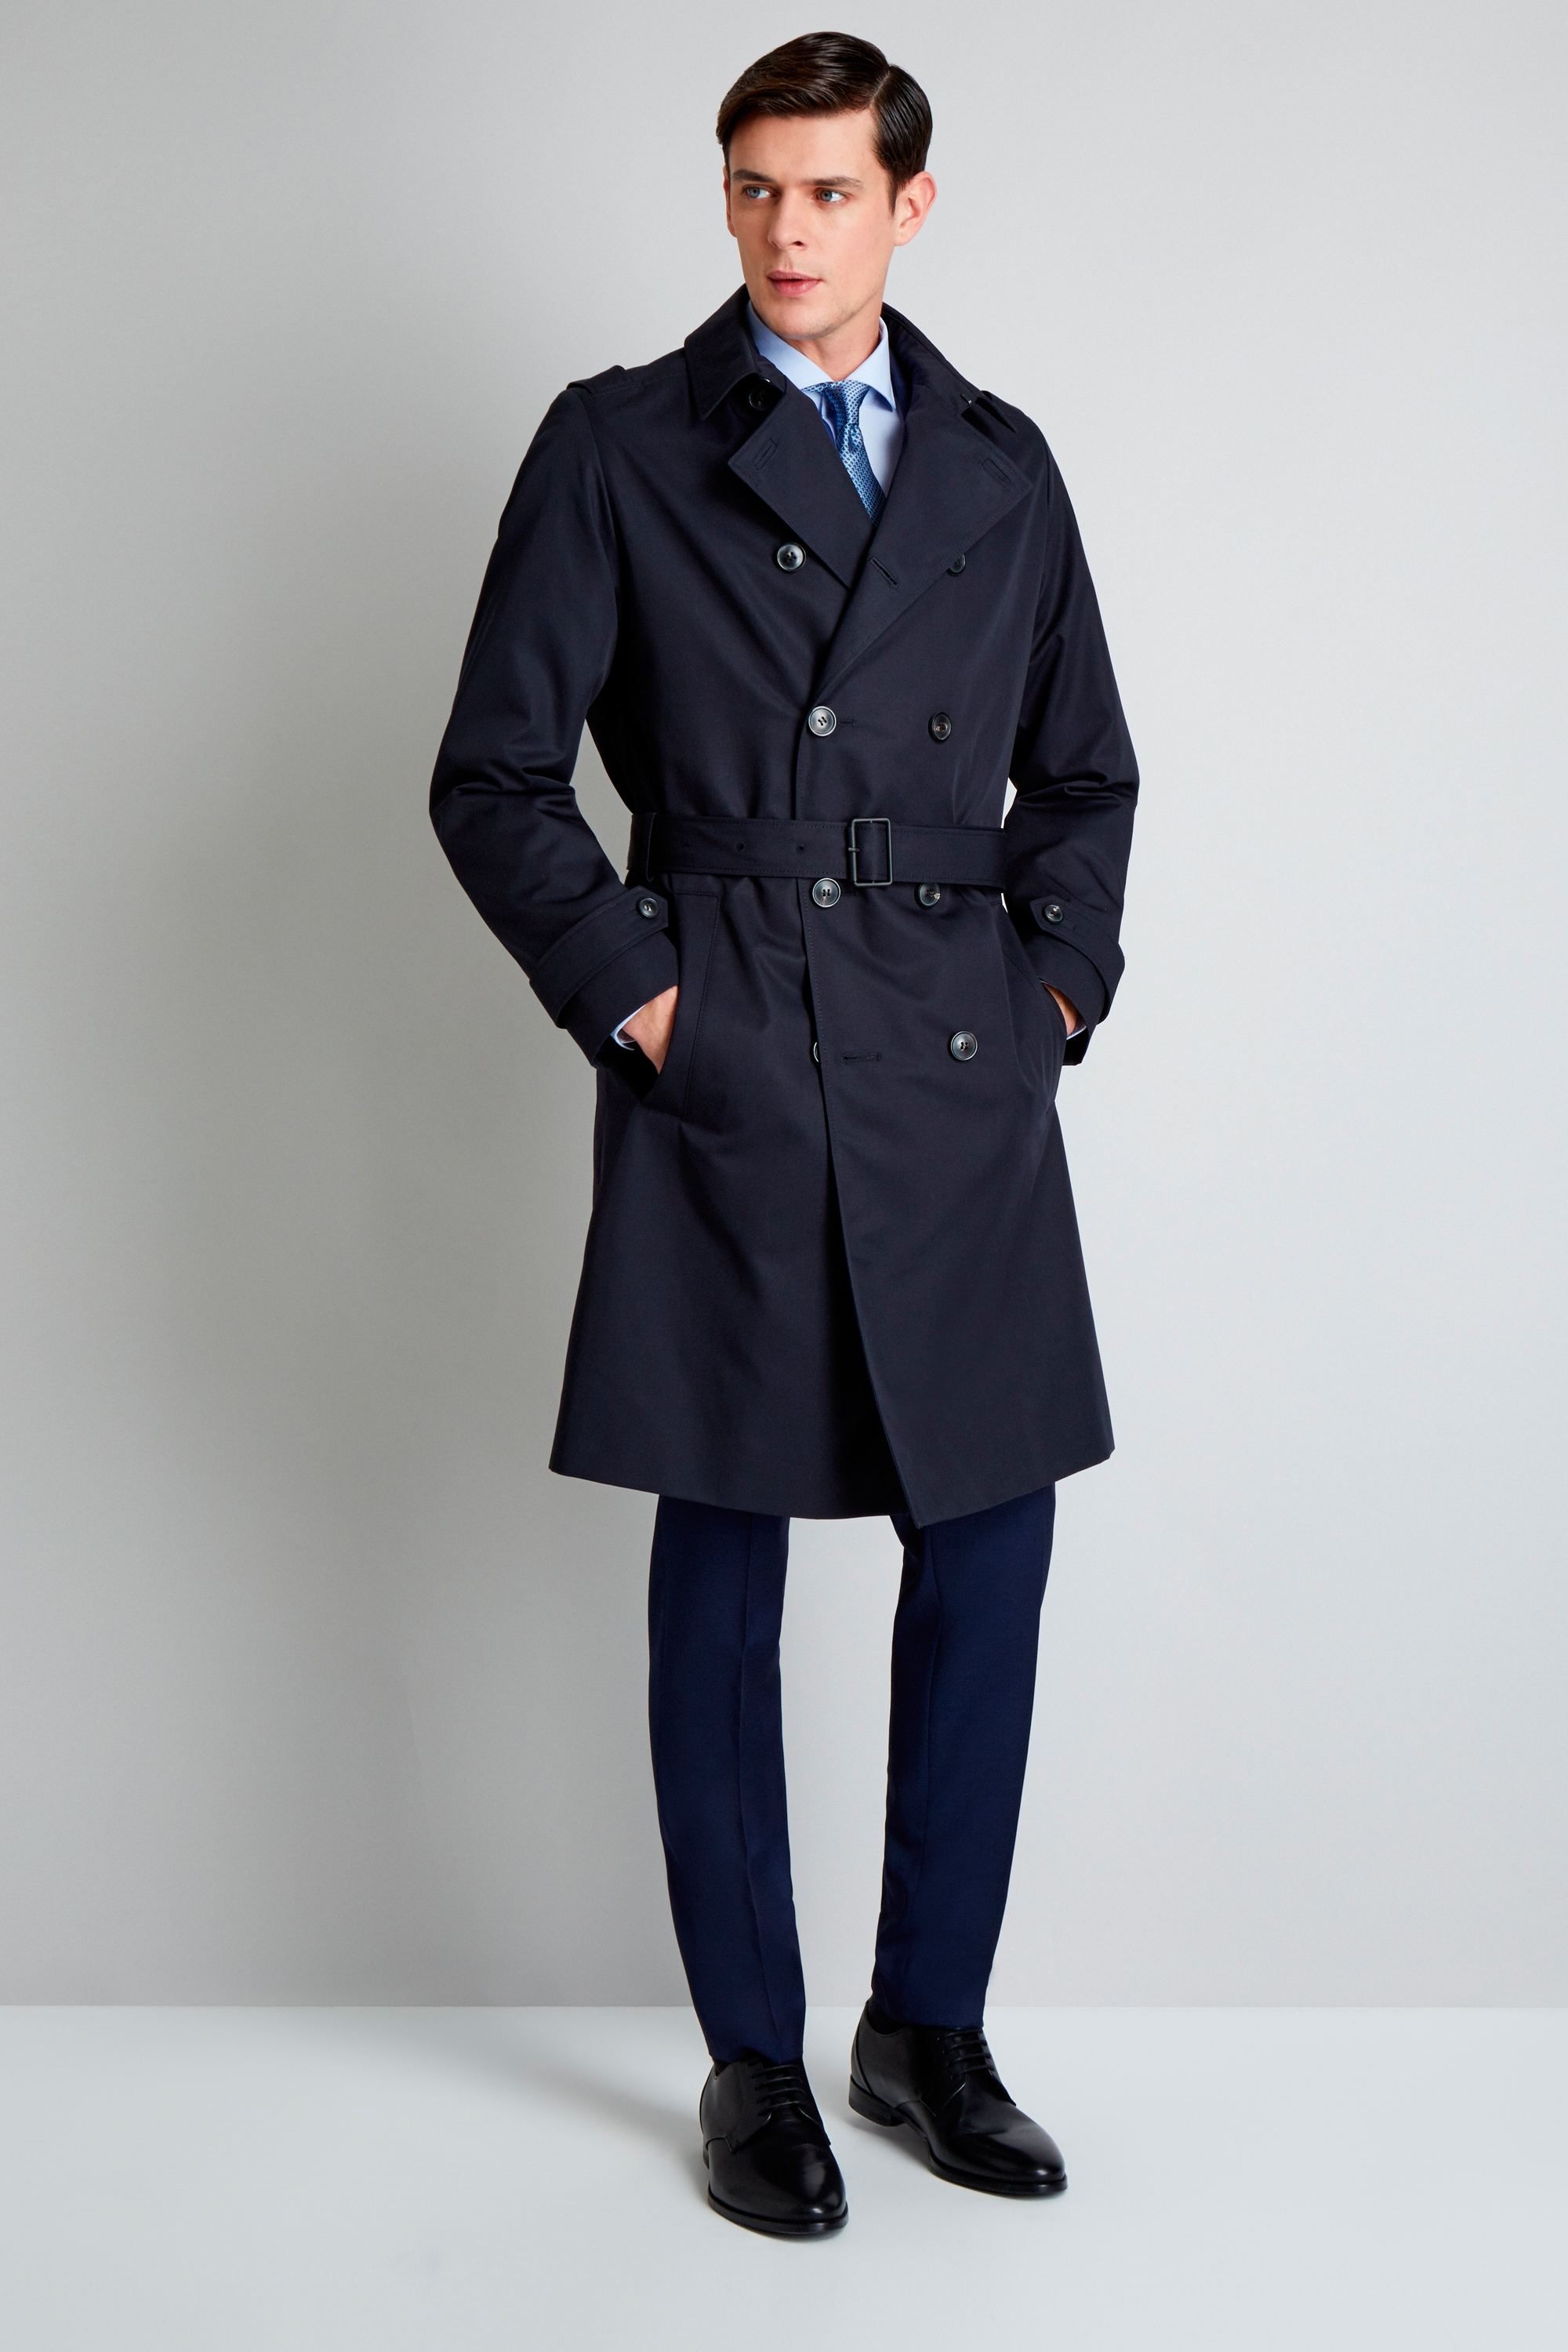 HUGO by Hugo Boss Double Breasted Navy Trench 8fca434a53